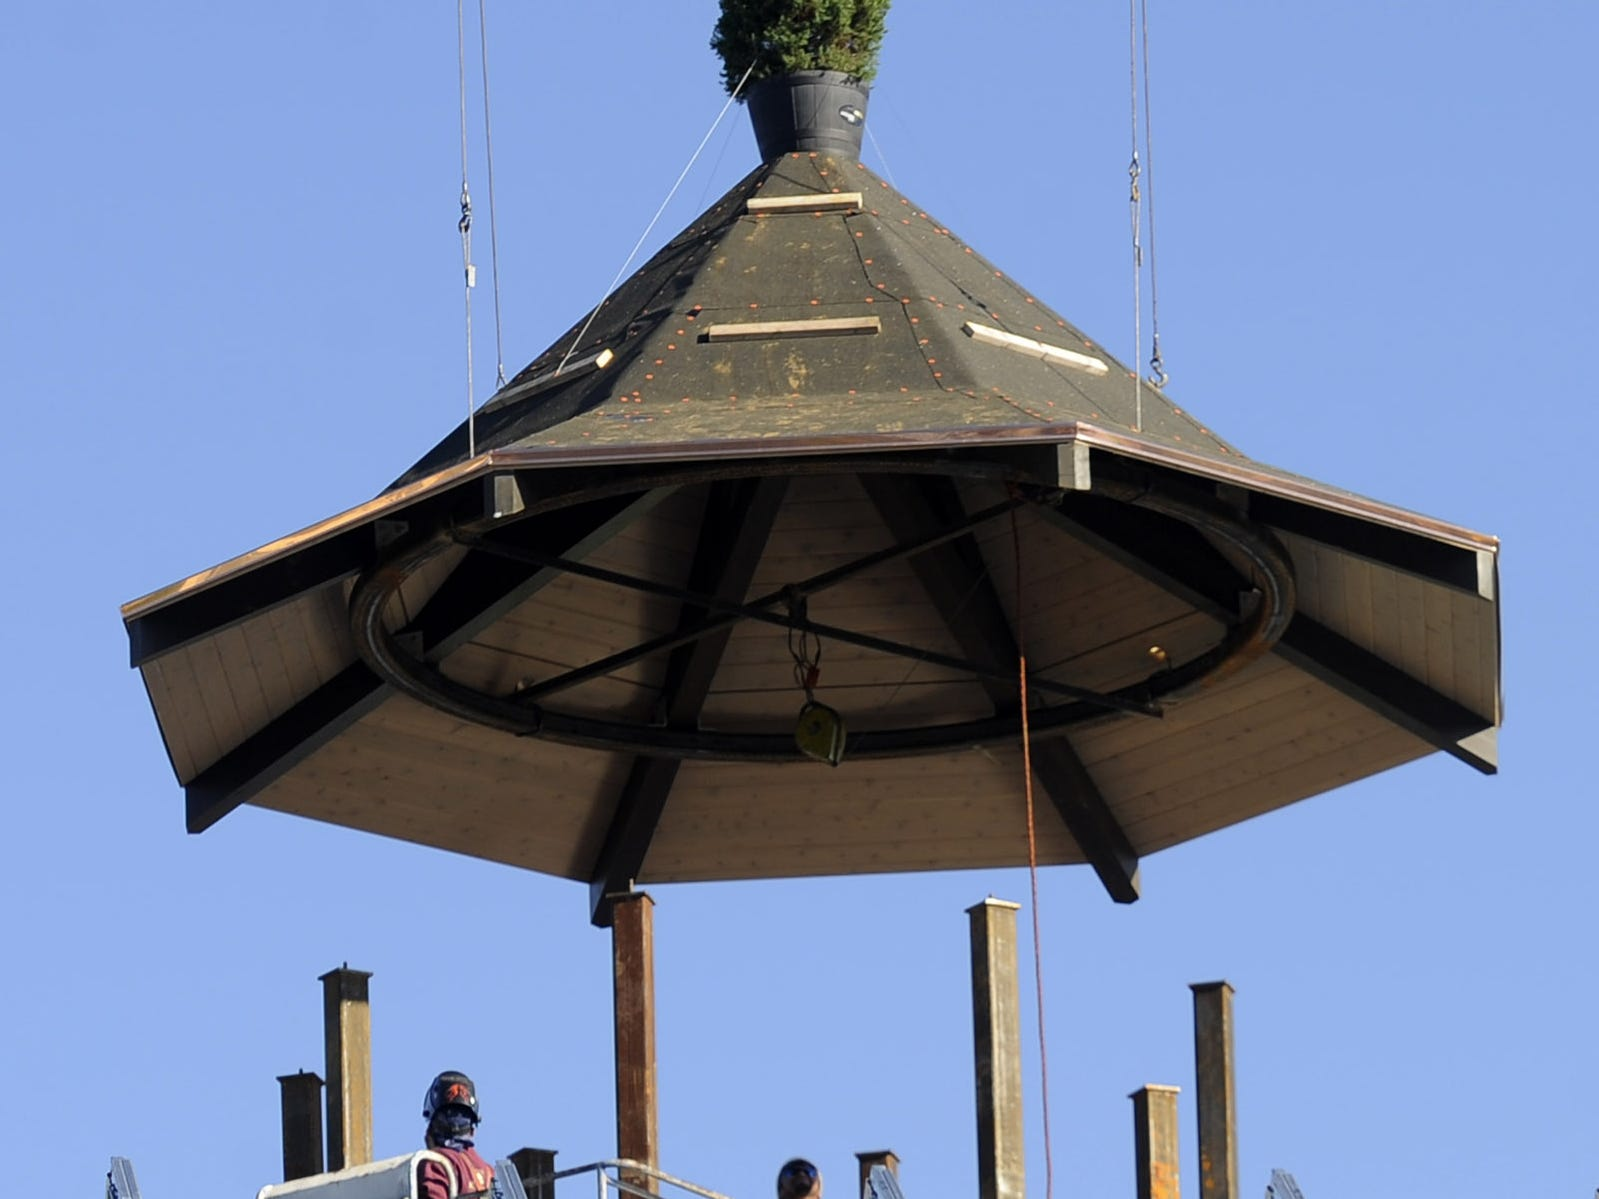 Workers install the roof of the Westminster bell tower on the new student center at Currey Ingram Academy Tuesday, Dec. 18, 2012.